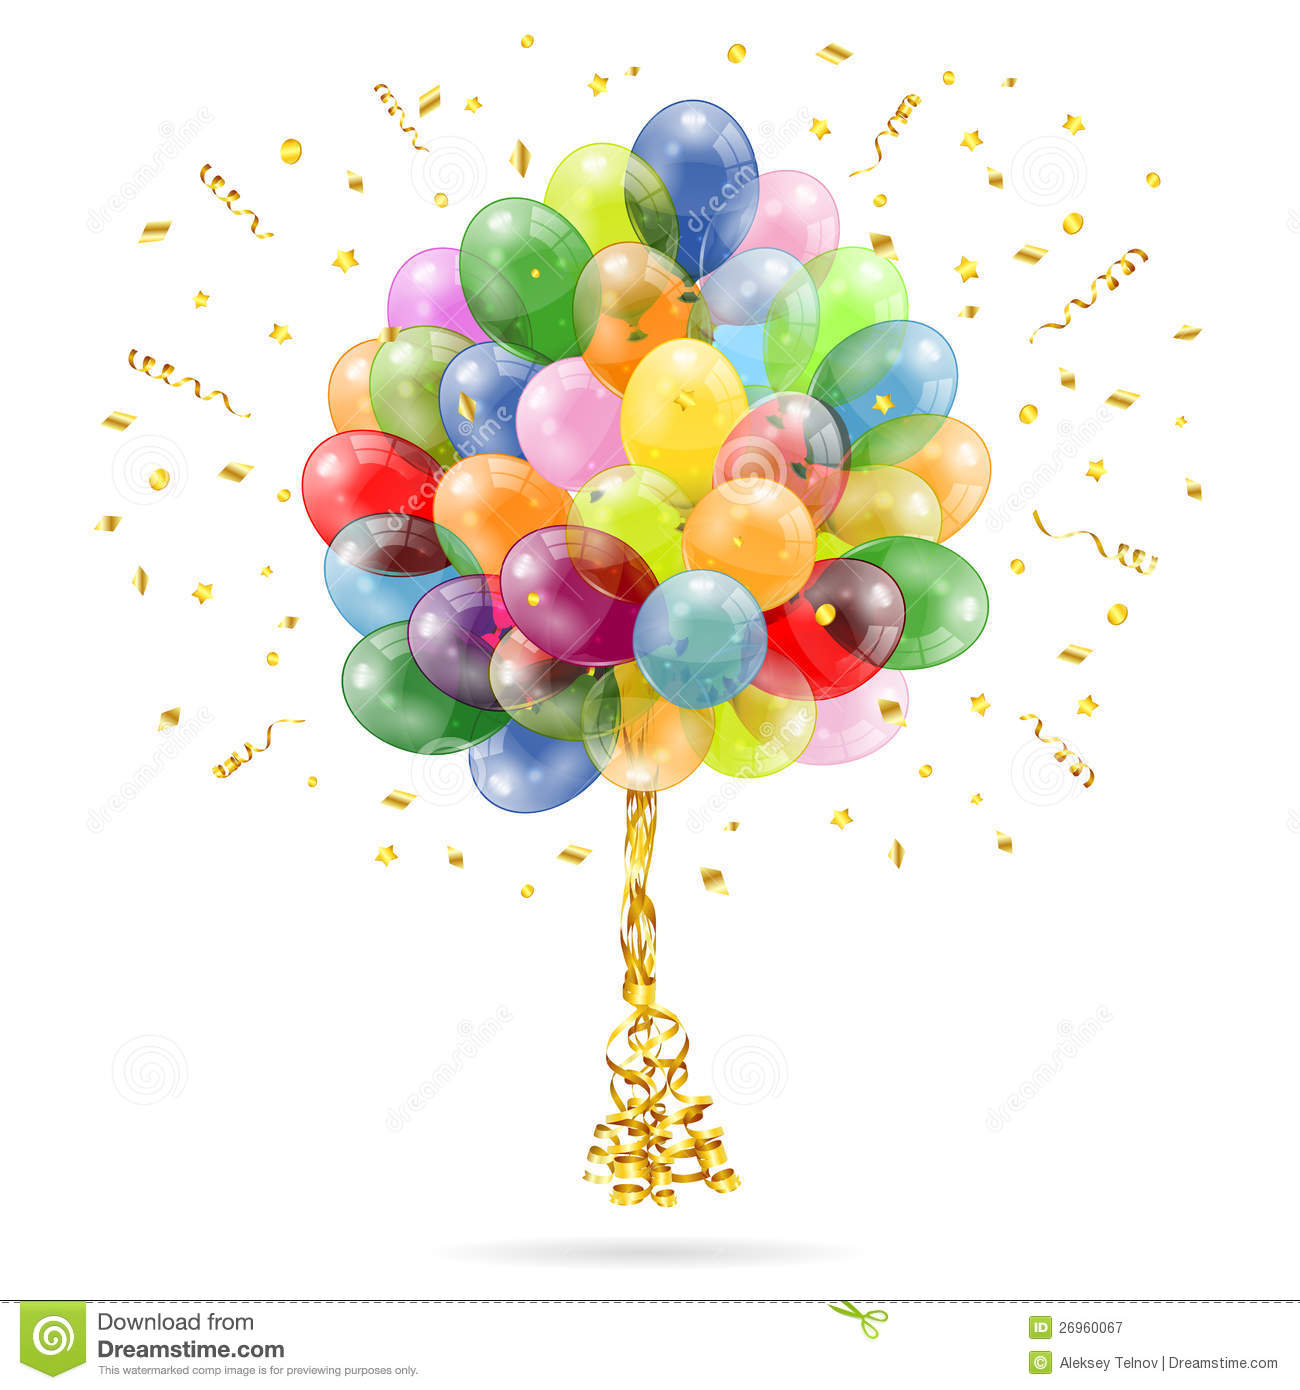 Birthday Balloons Royalty Free Stock Photography - Image: 26960067